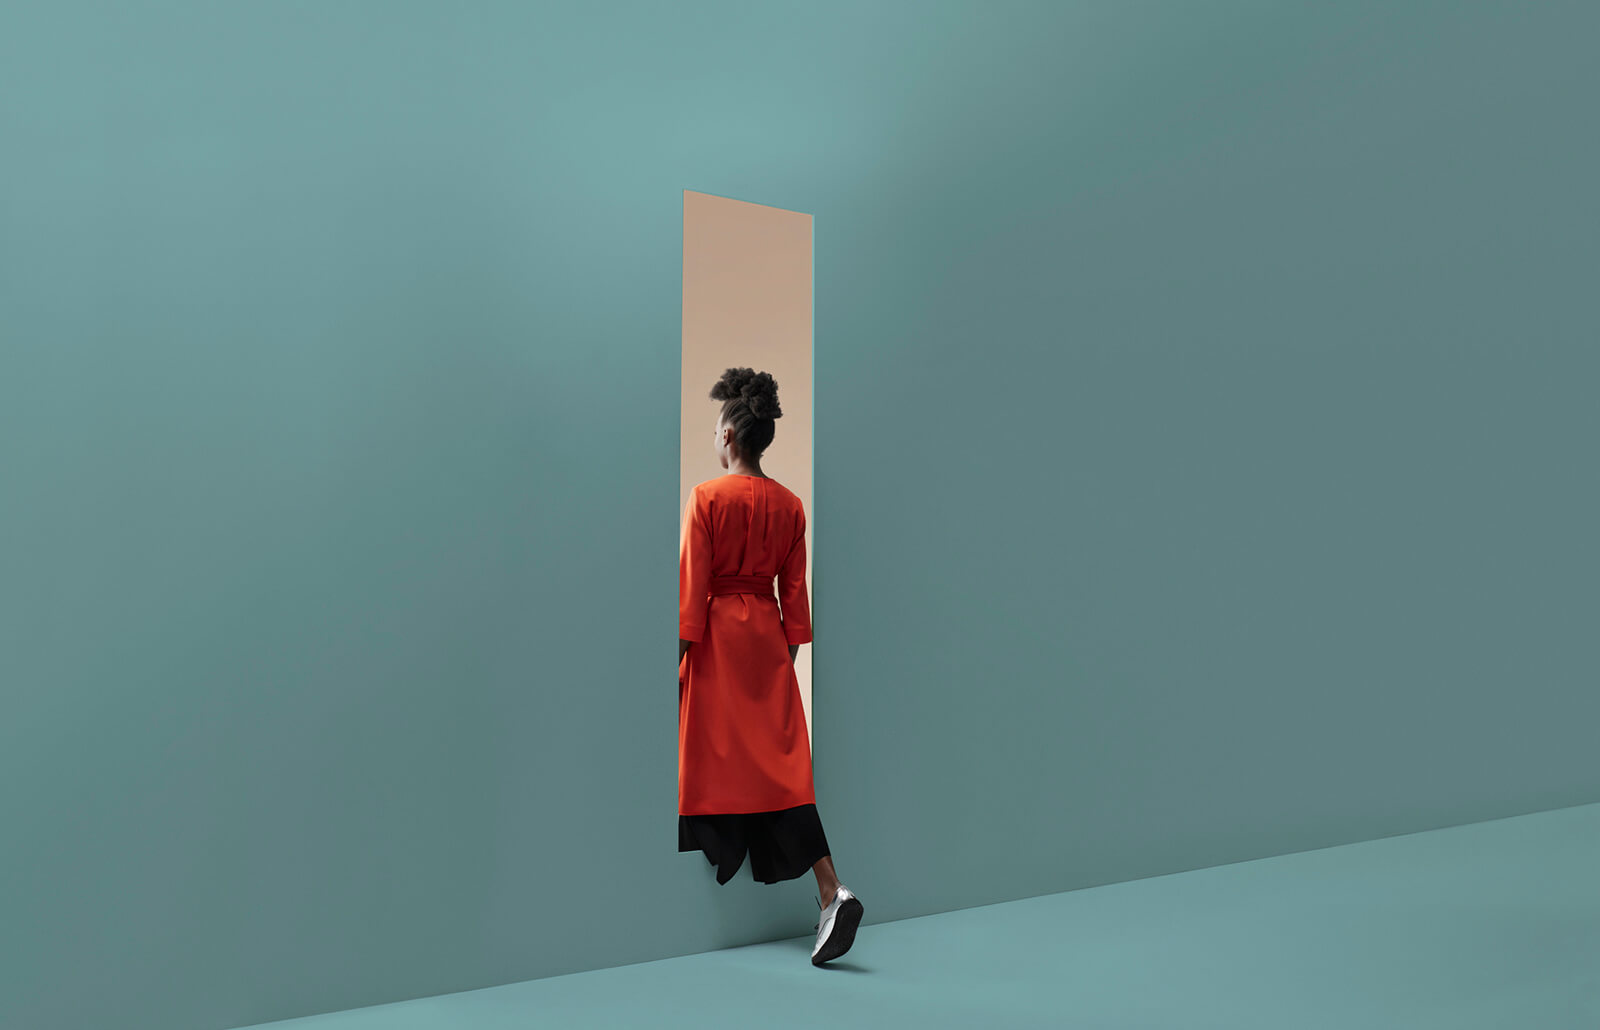 A woman in a red dress is crossing a doorway into another room. Each room is blank, with one room colored blue and the other a golden hue.